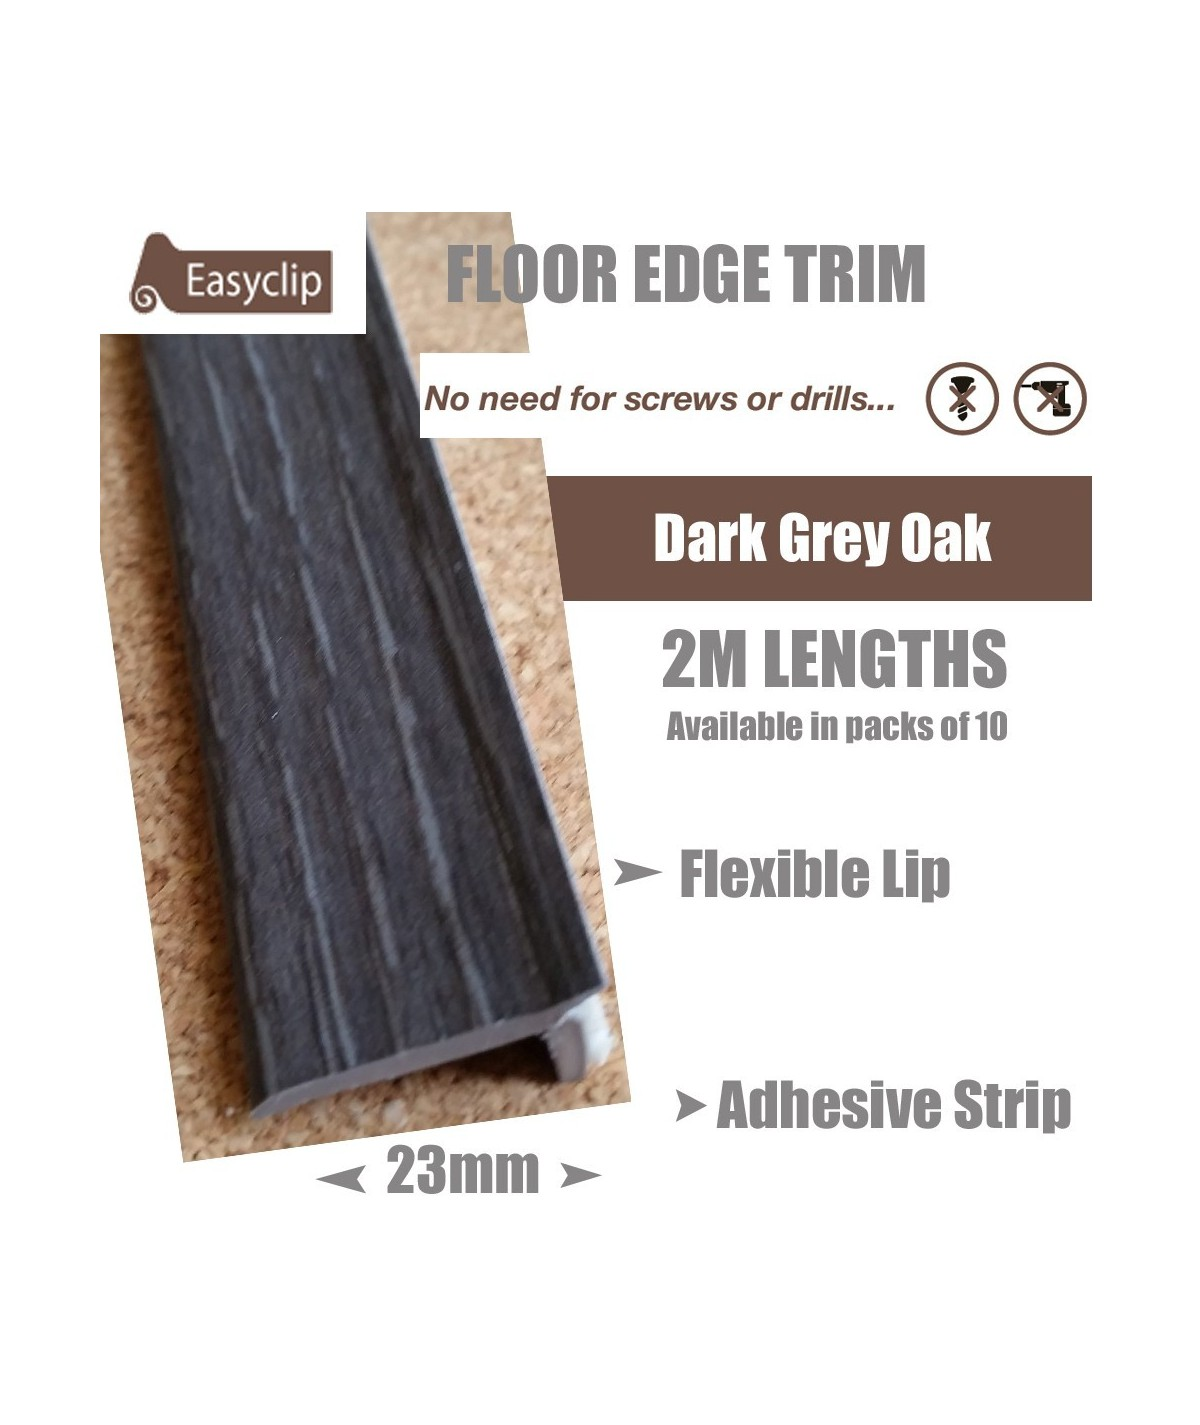 Dark Grey Oak Floor Edge Adhesive Trim 10 x 2Mtr Lengths Bridge Gap Between Floor and Skirting